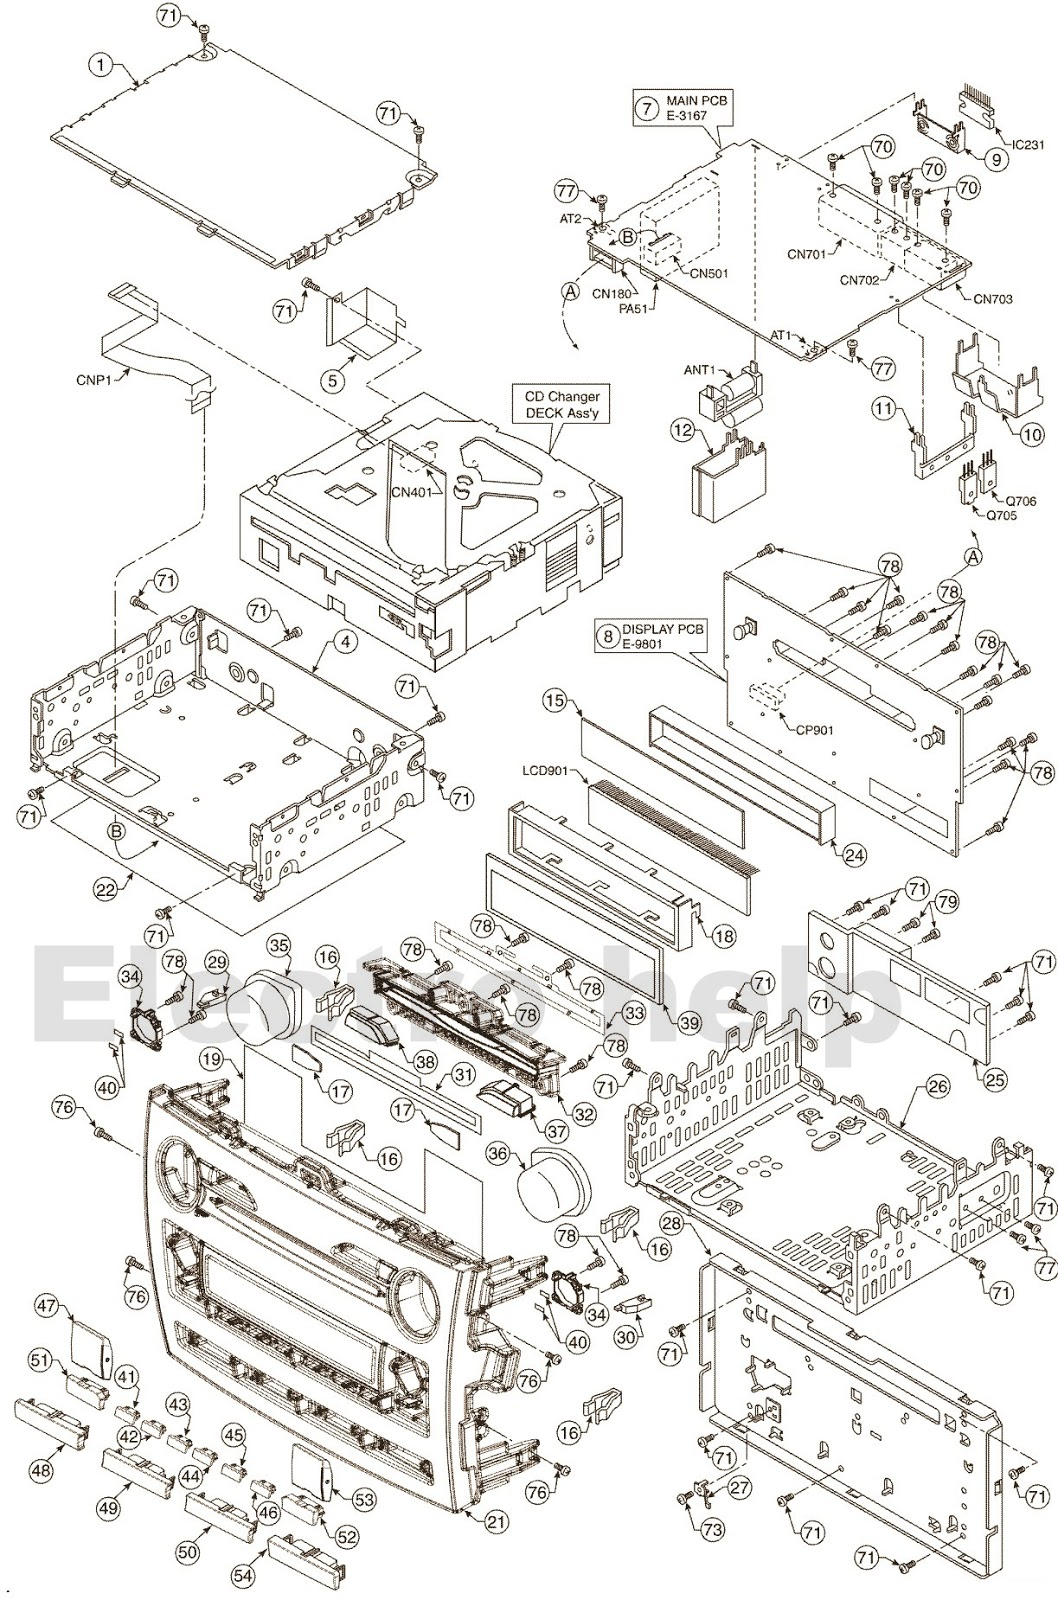 Toyota Corolla Cq Es7880az Circuit Diagram And Connection Details Also Headset Lifier Test Simplified Schematic Diagrams Main Block Display